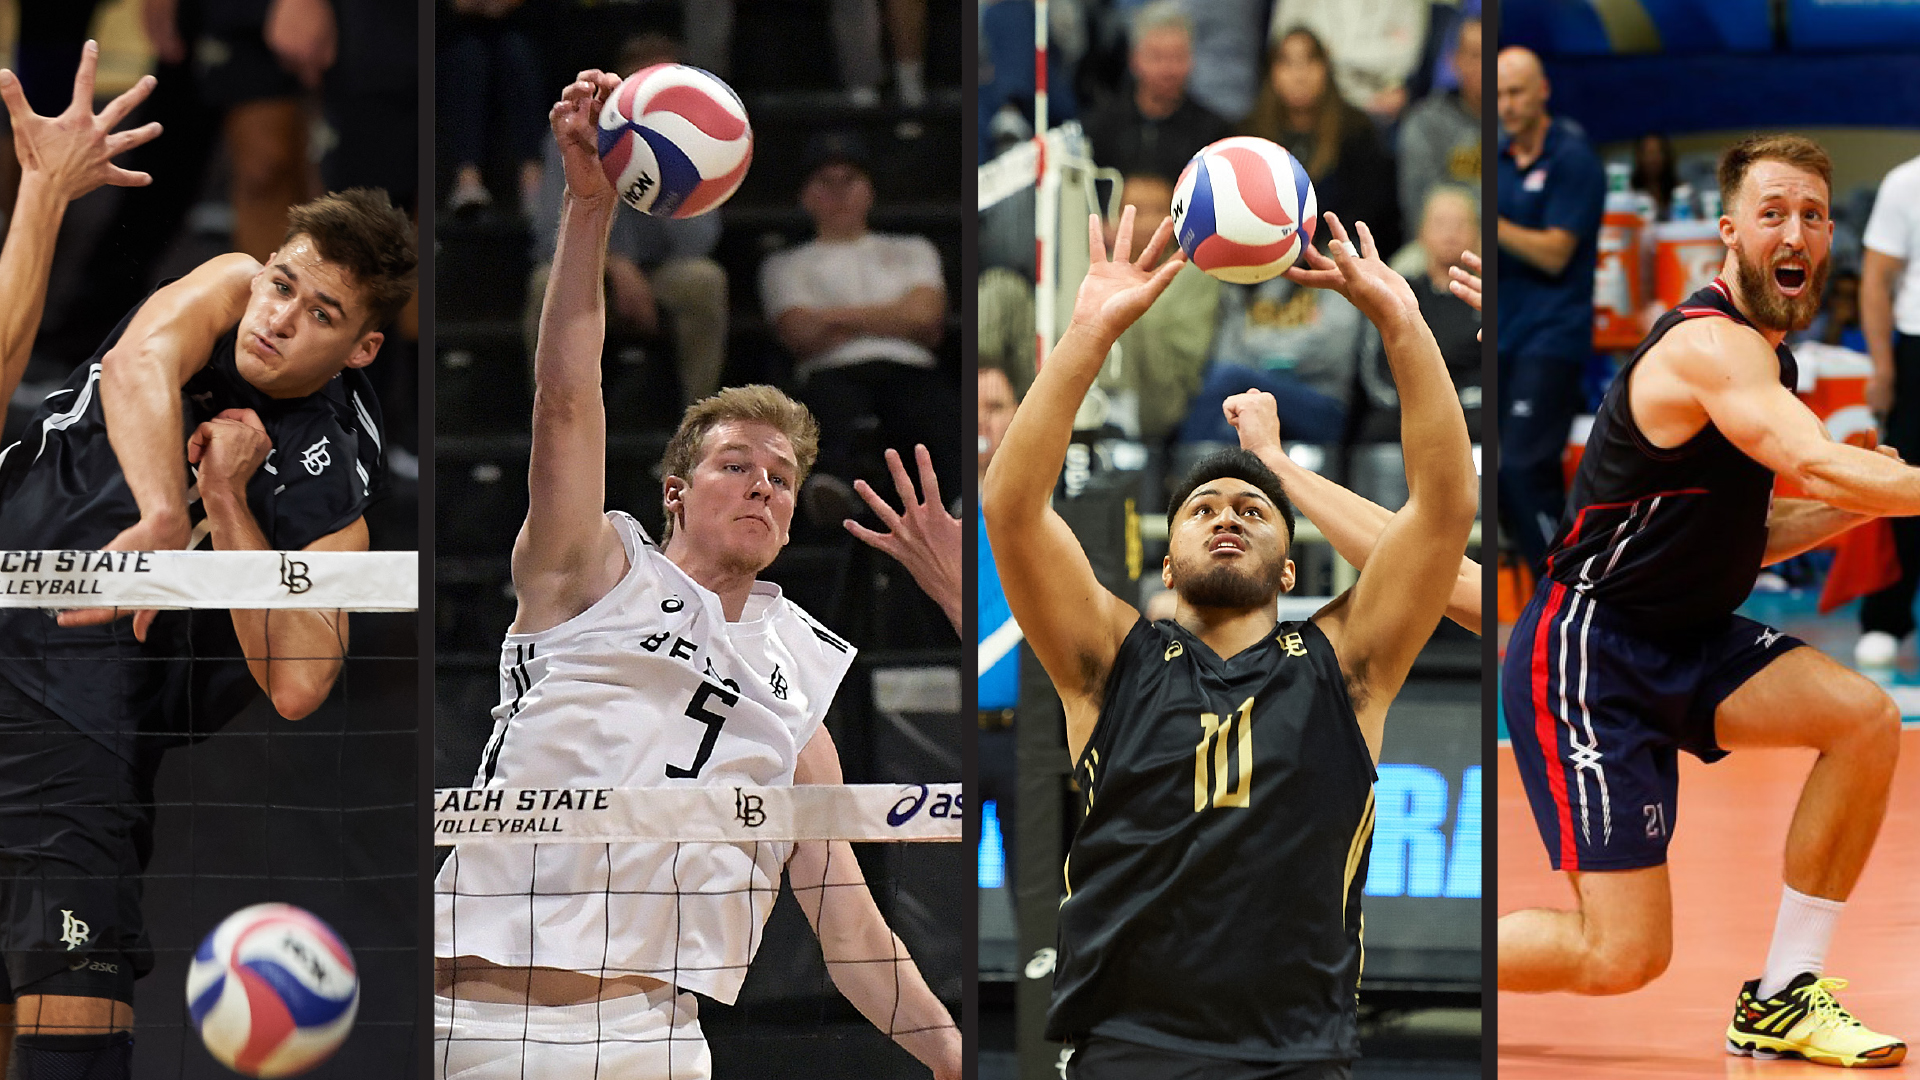 Lbsu Men S Volleyball Has Four On U S Men S Vnl Preliminary Roster Long Beach State University Athletics